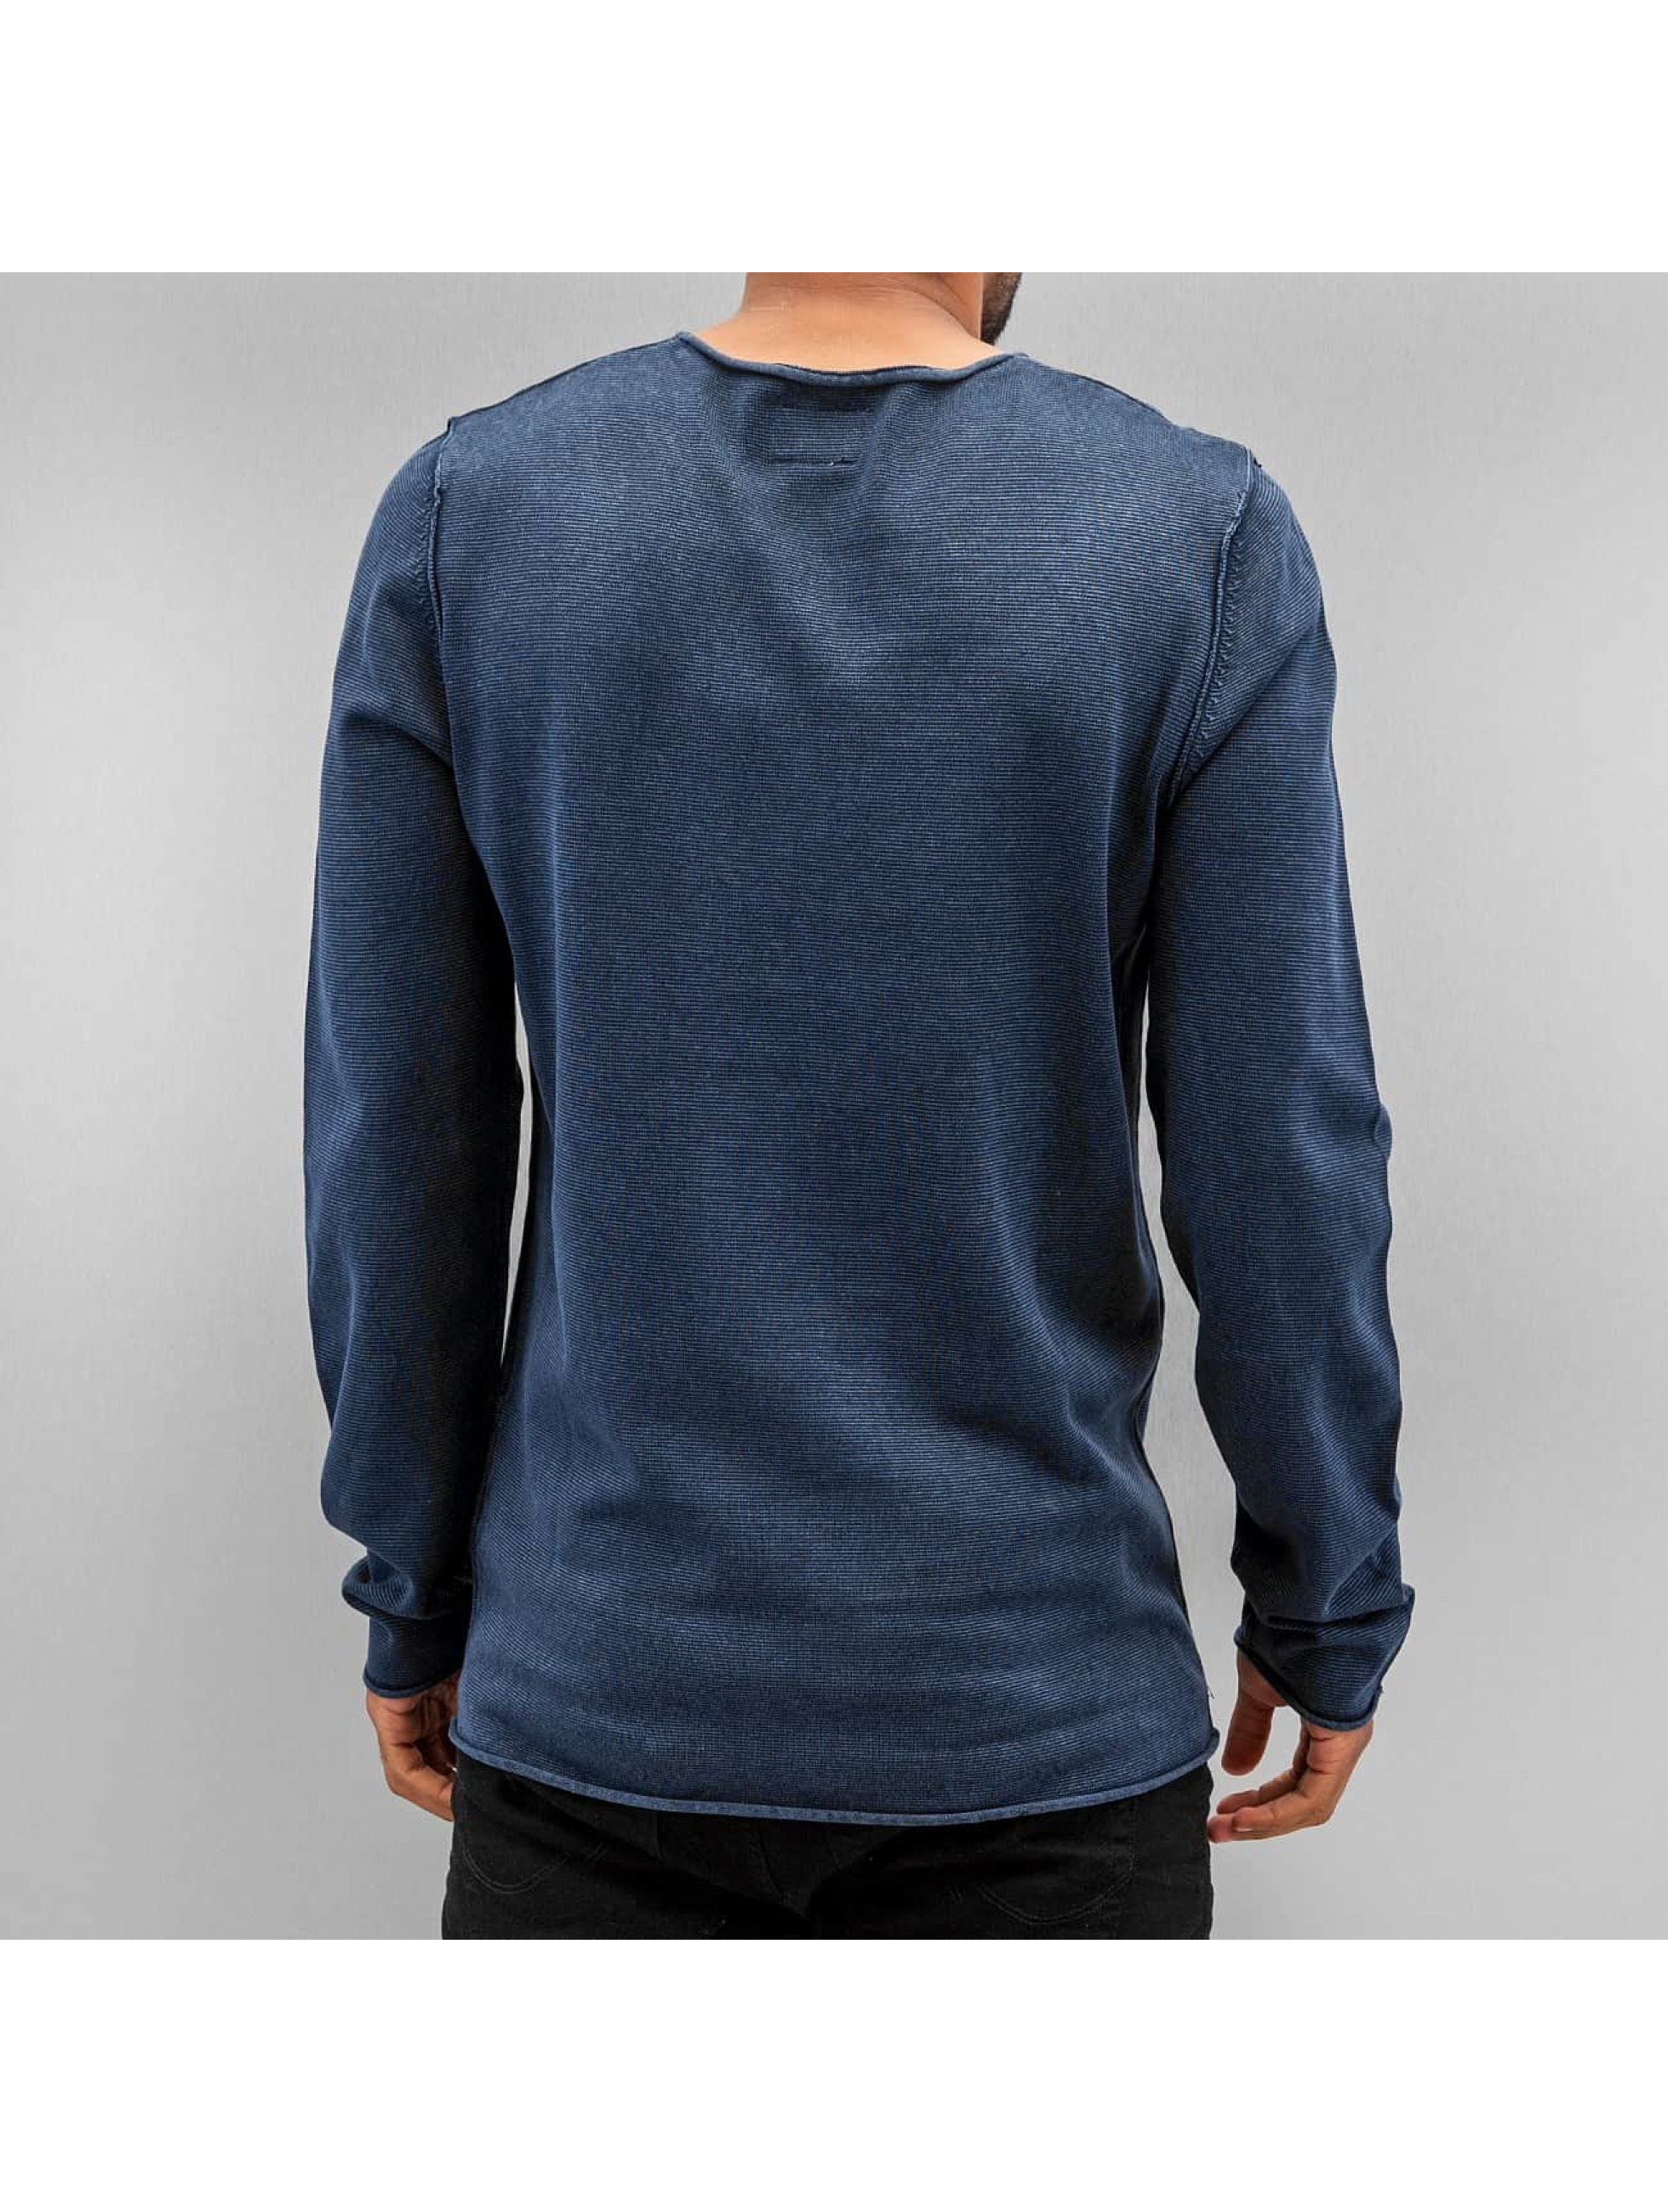 SHINE Original Pullover Acid Wash Roll Edge blau